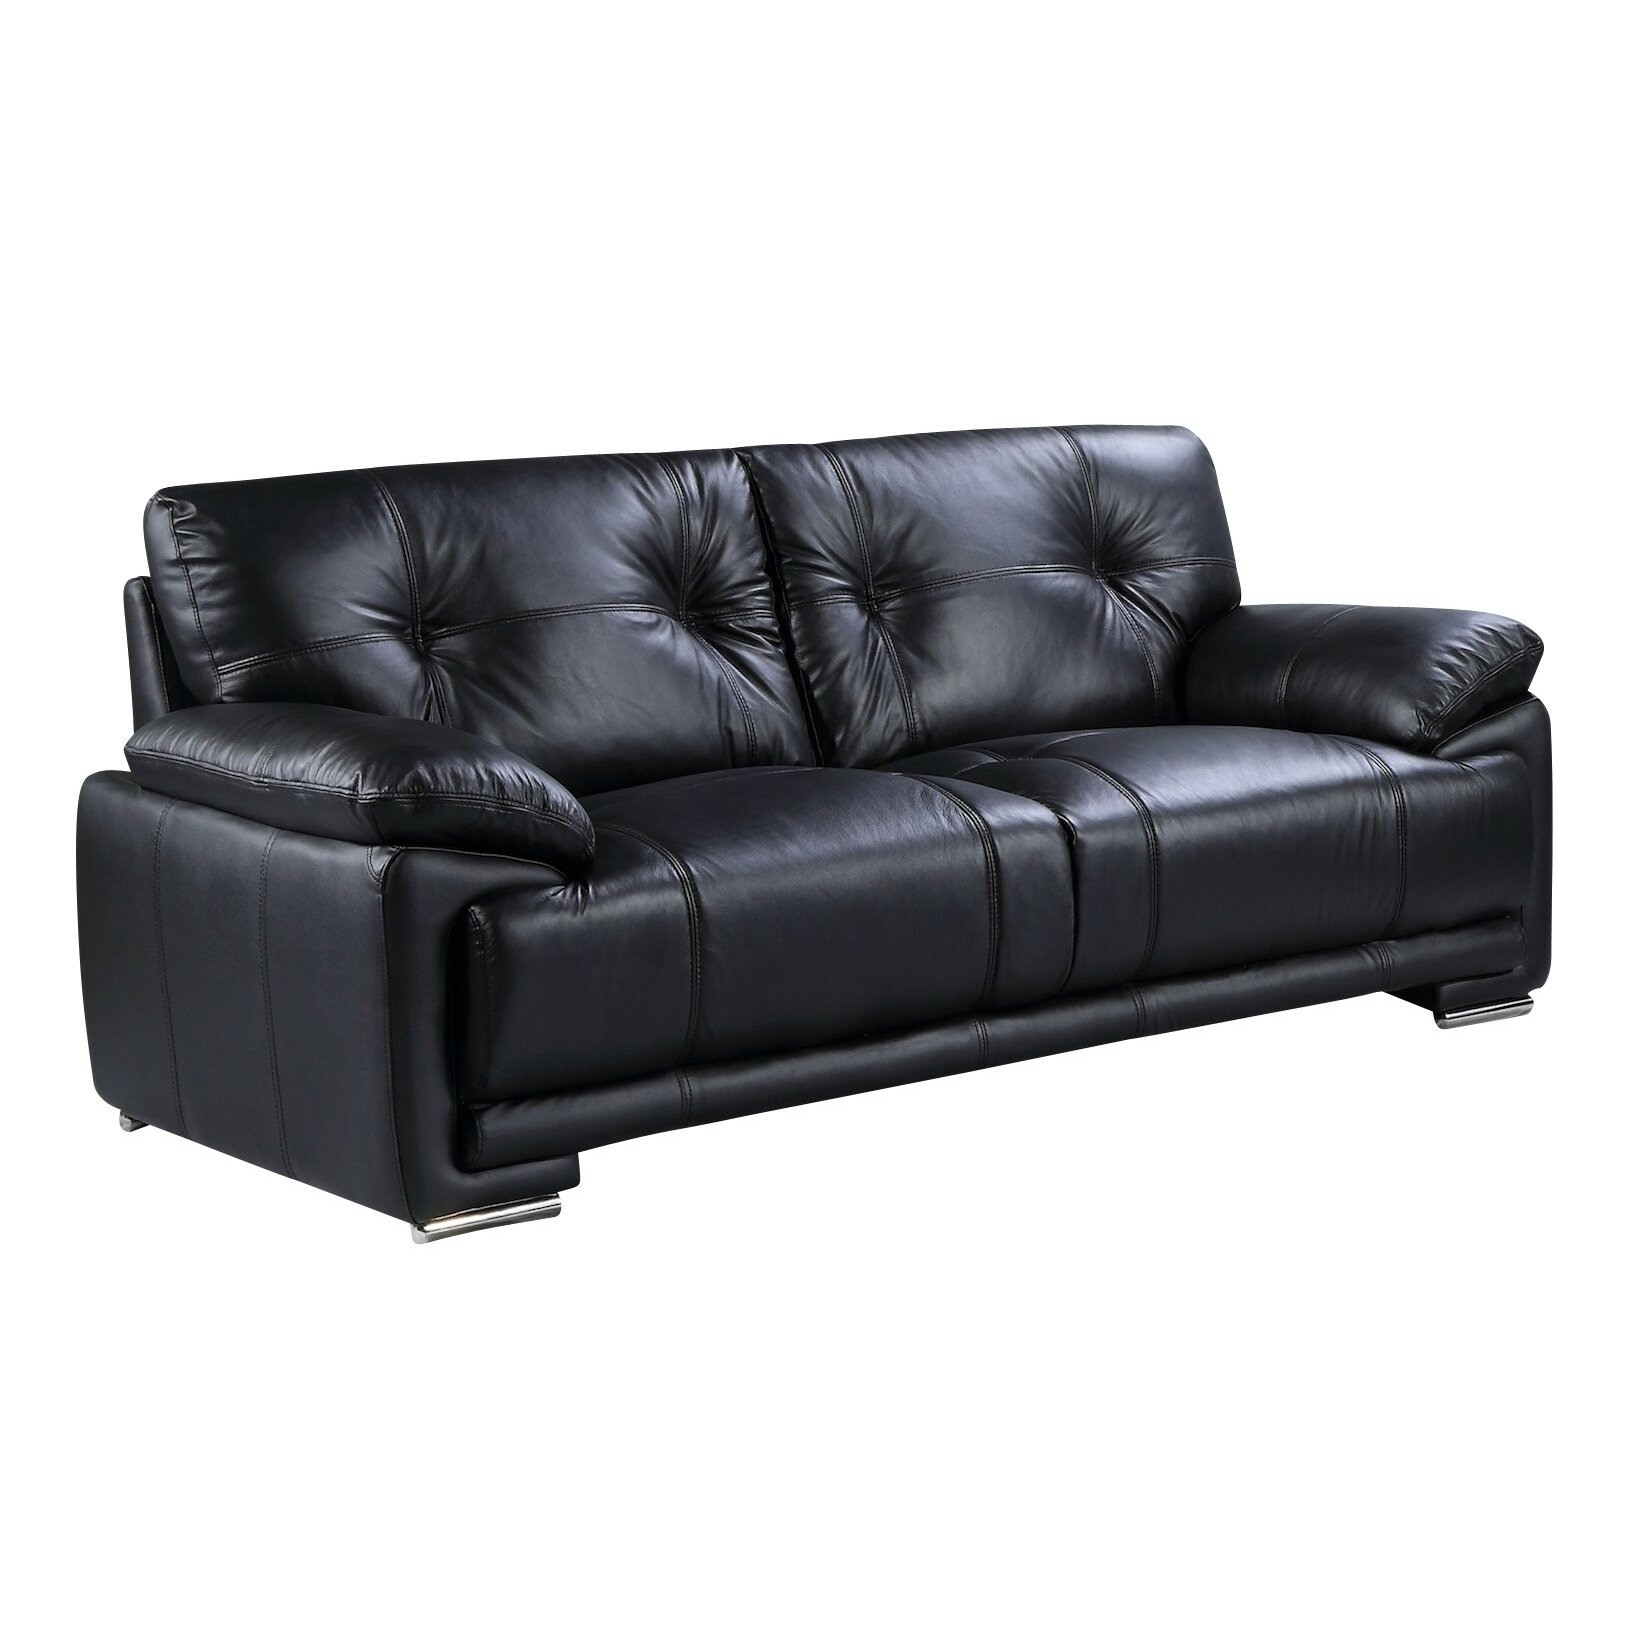 Rose Bay Furniture Lucy Genuine Leather 3 Seater Sofa